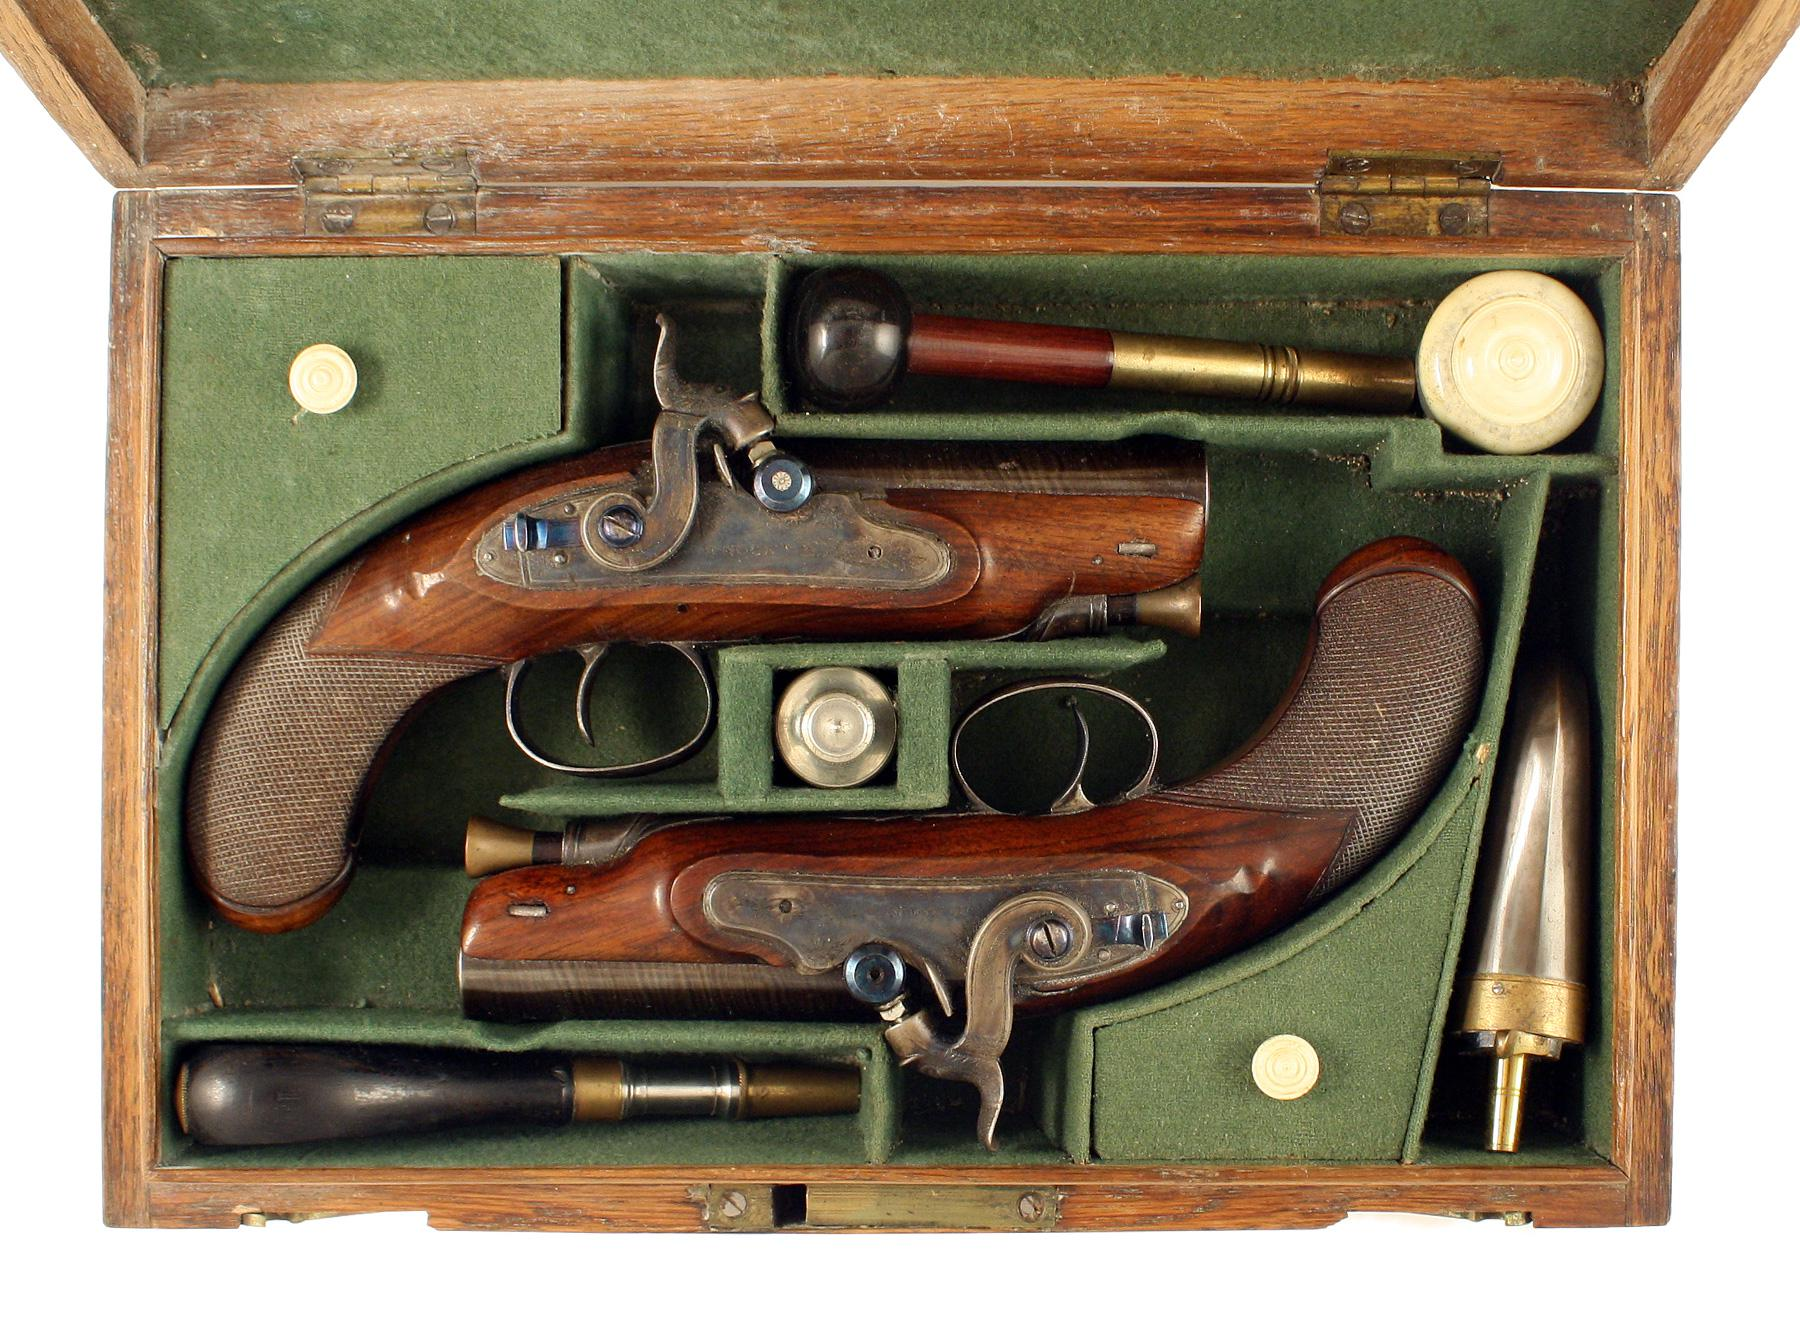 A Superb Pair of Percussion Pistols by Nock